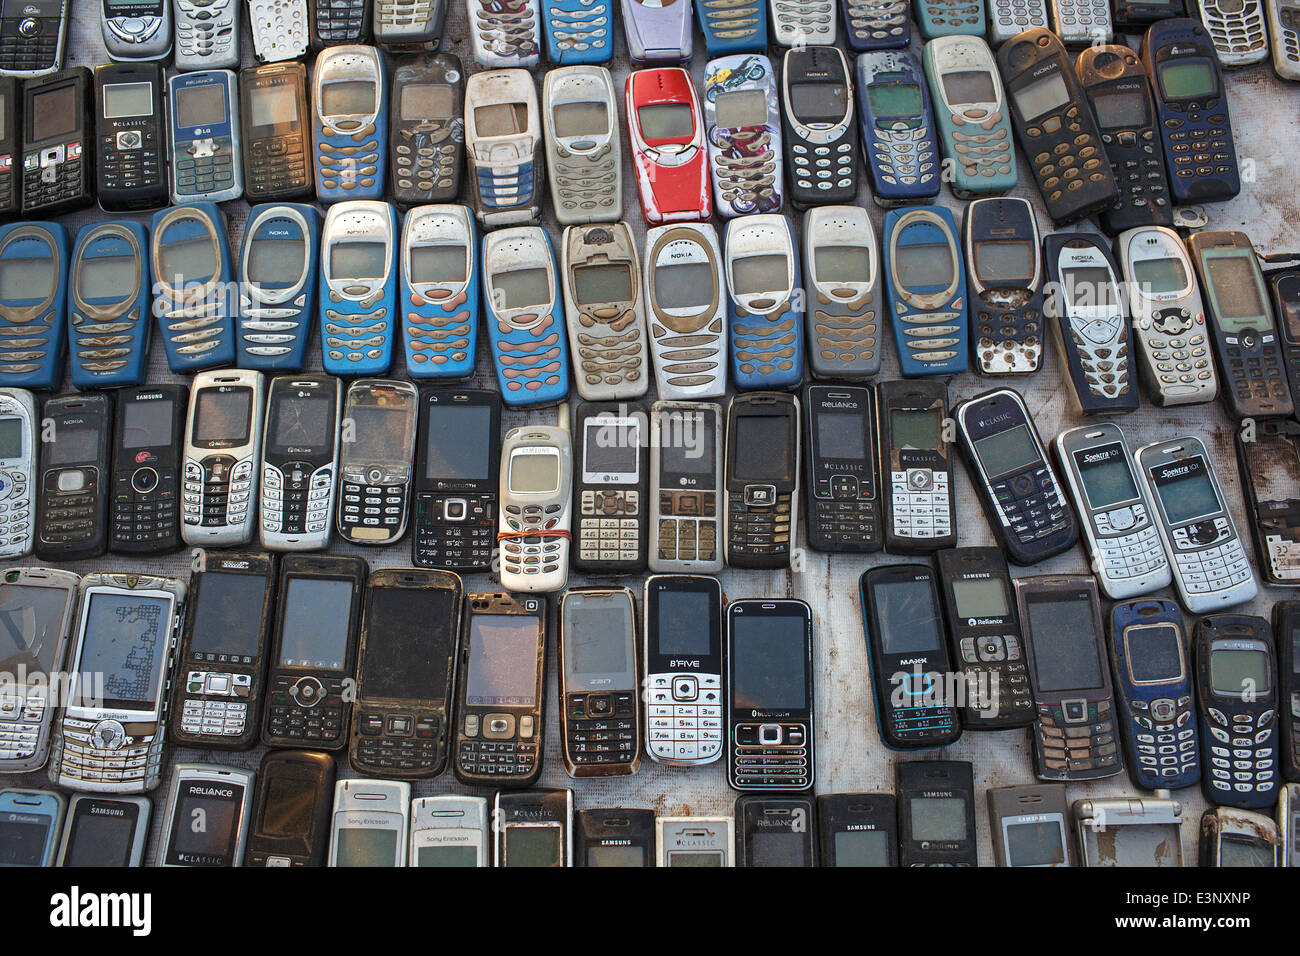 Old used mobile phones (cellphones) mostly Nokia for sale at the flea market in Ahmedabad, India. - Stock Image